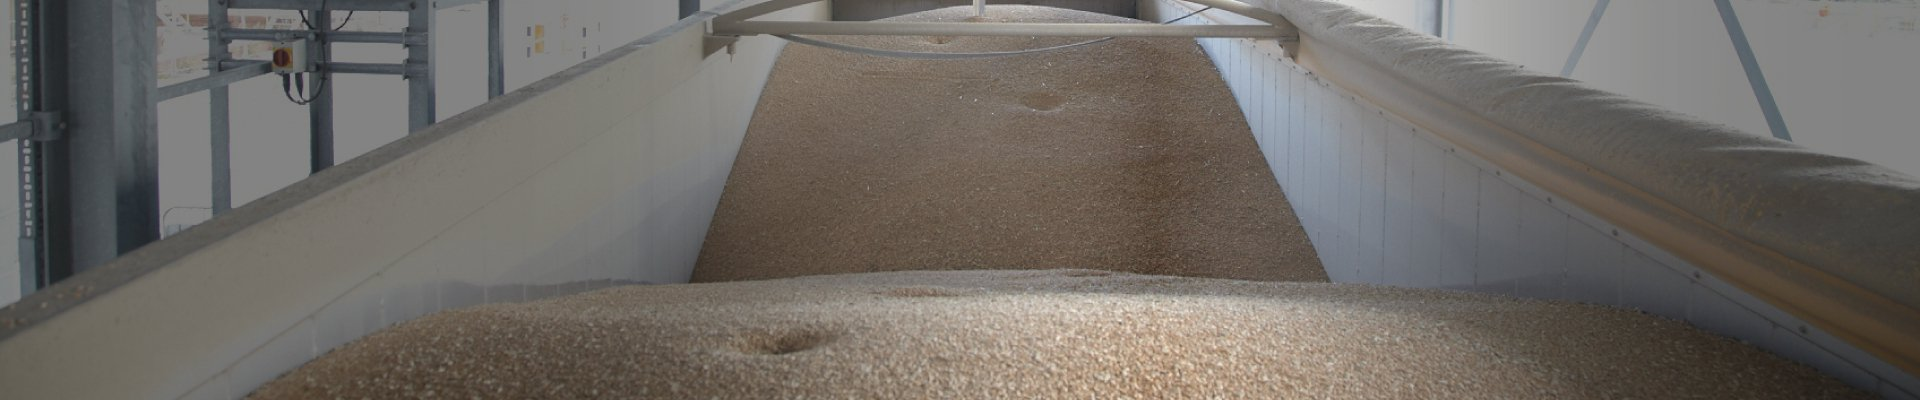 Grain Processing and Storage Banner Image